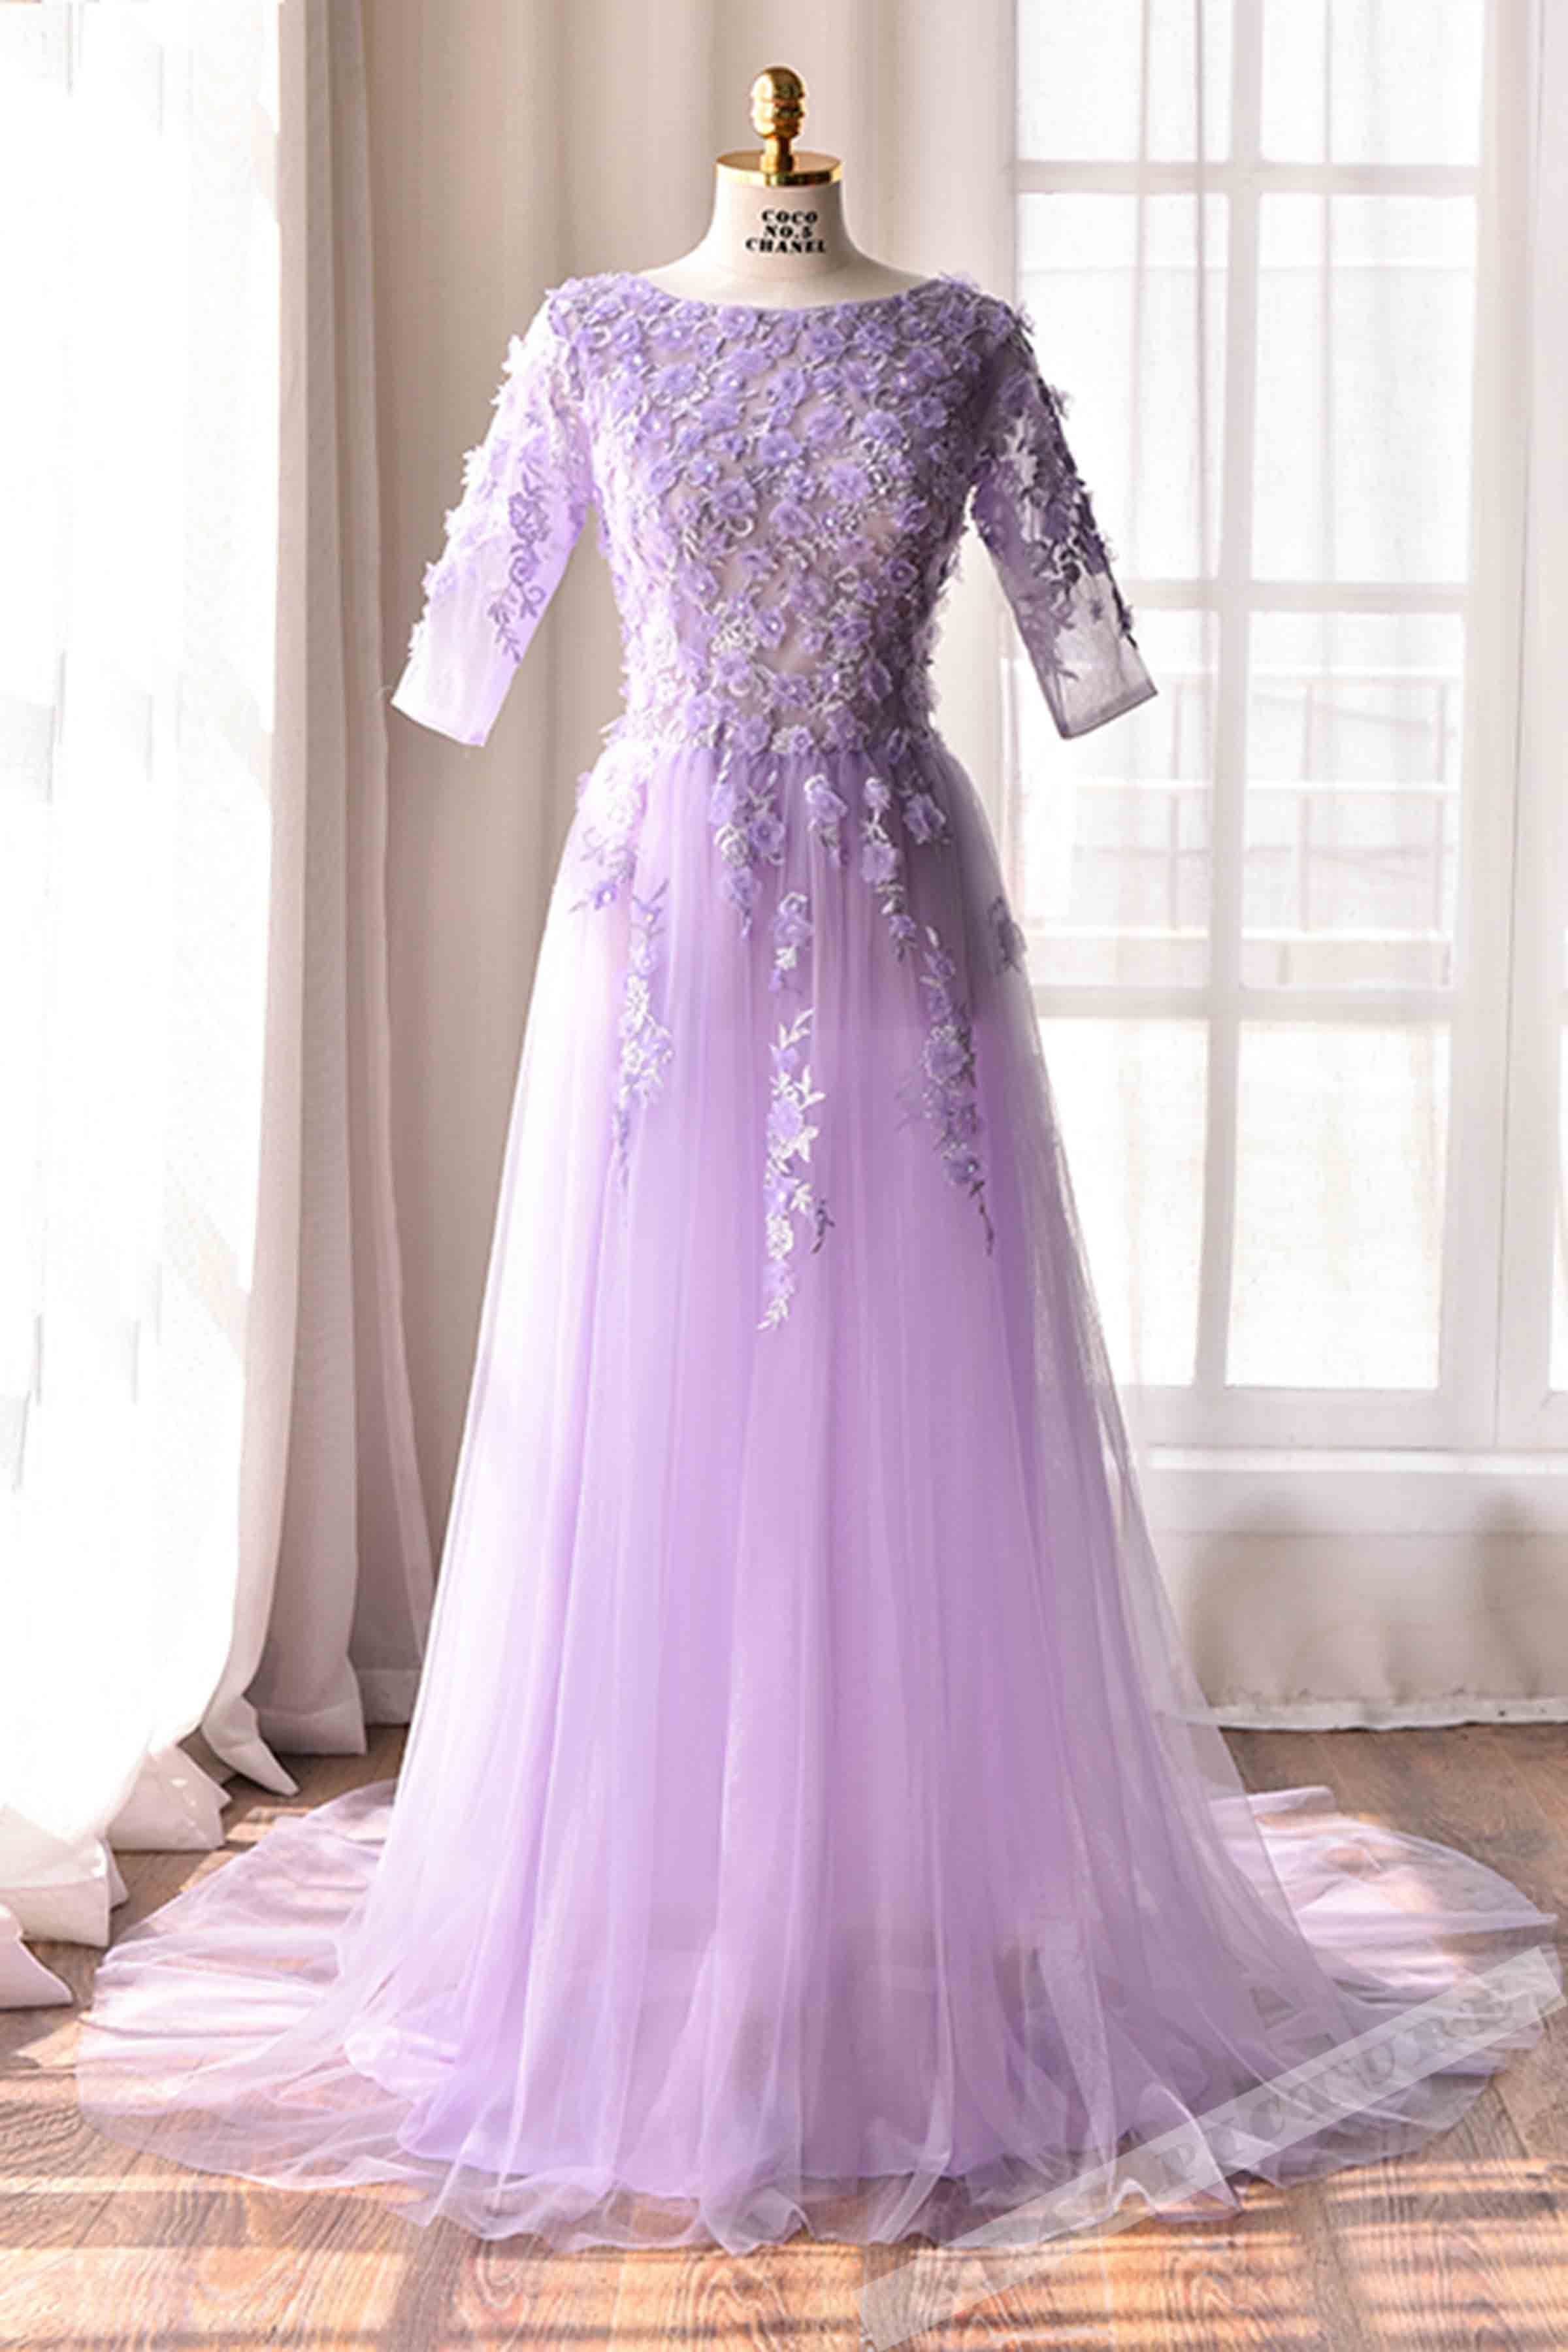 Lilac tulle lace applique seethrough half sleeves long dress from